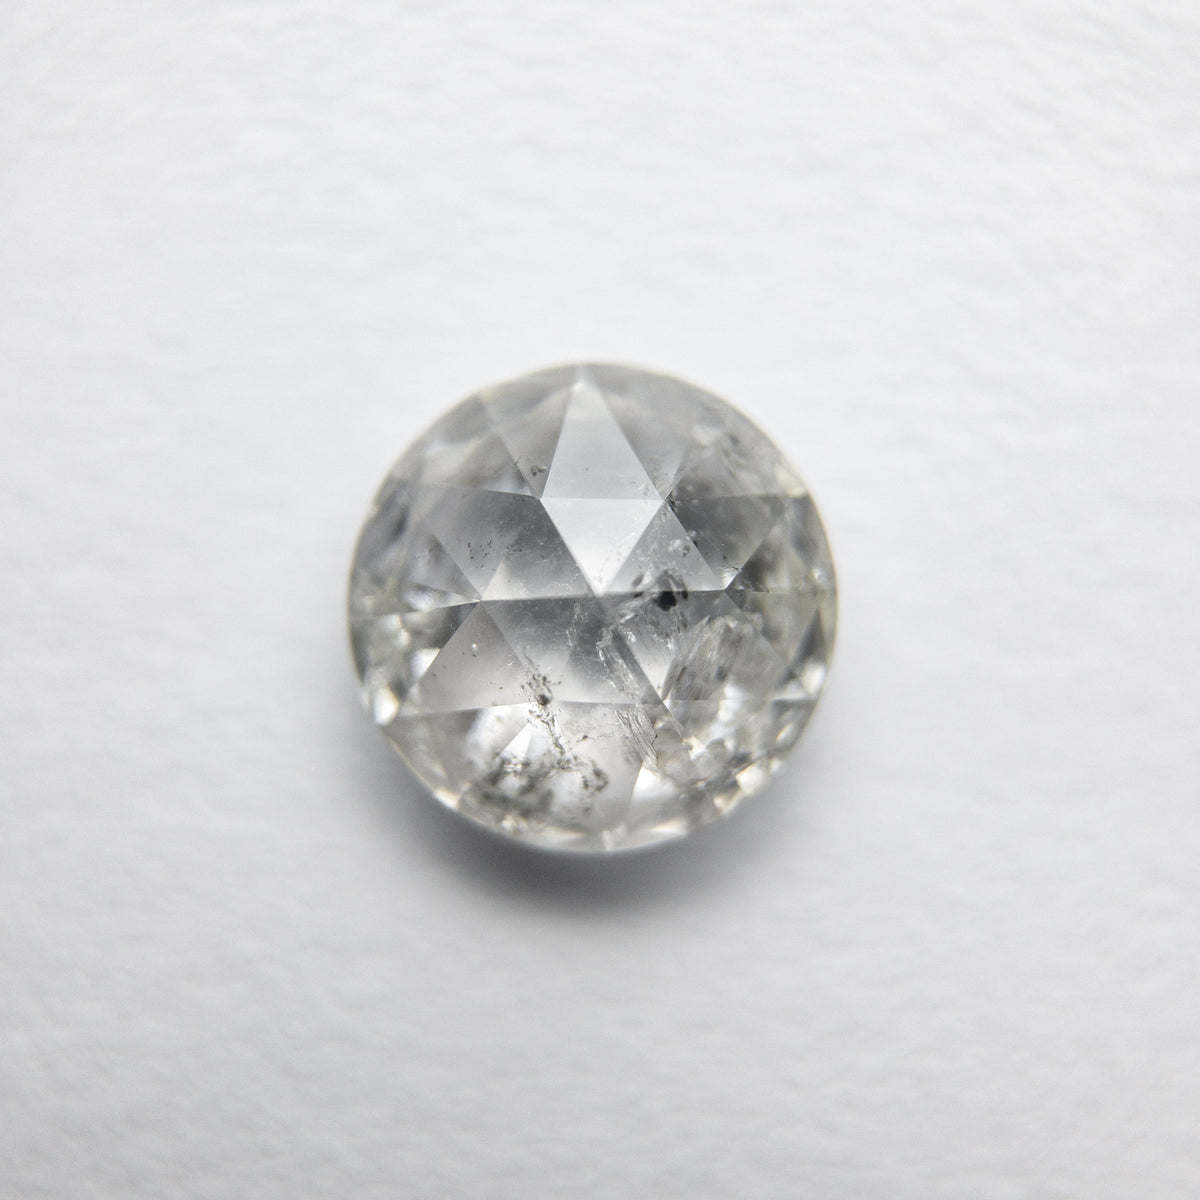 1.01ct 6.49x6.47x3.39mm Round Double Cut 18094-07